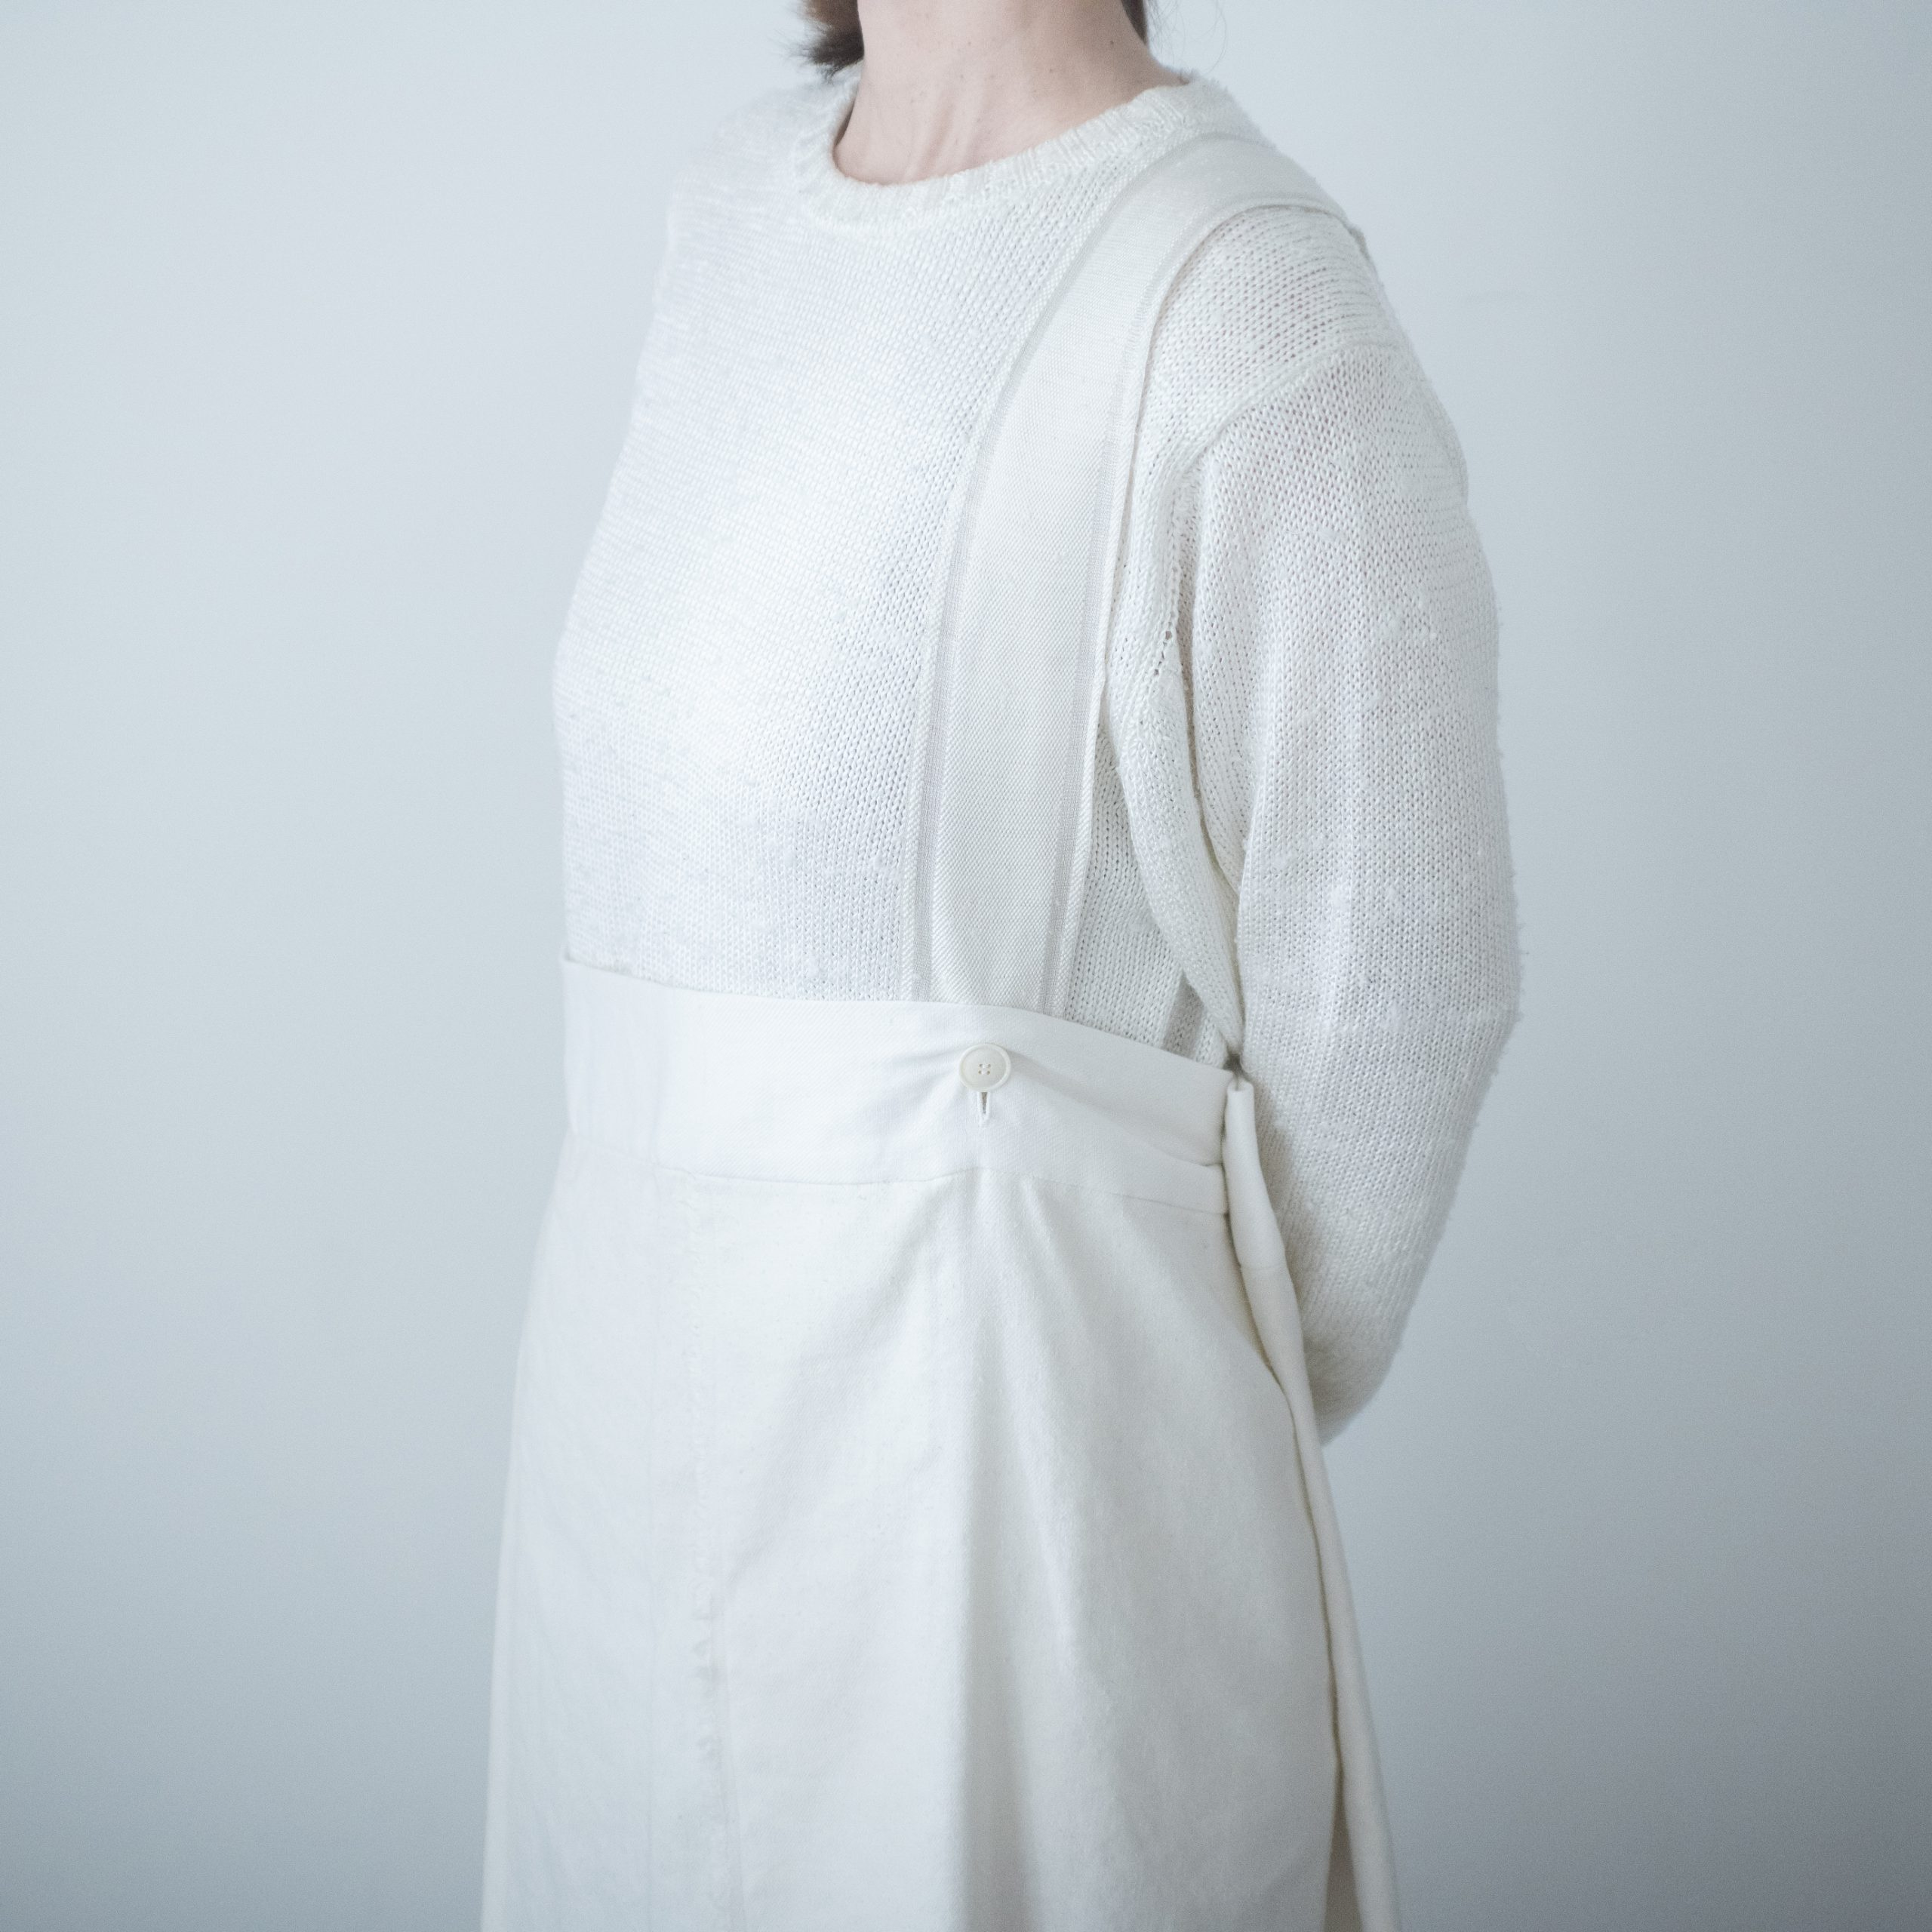 silk linen wrap skirt(white)